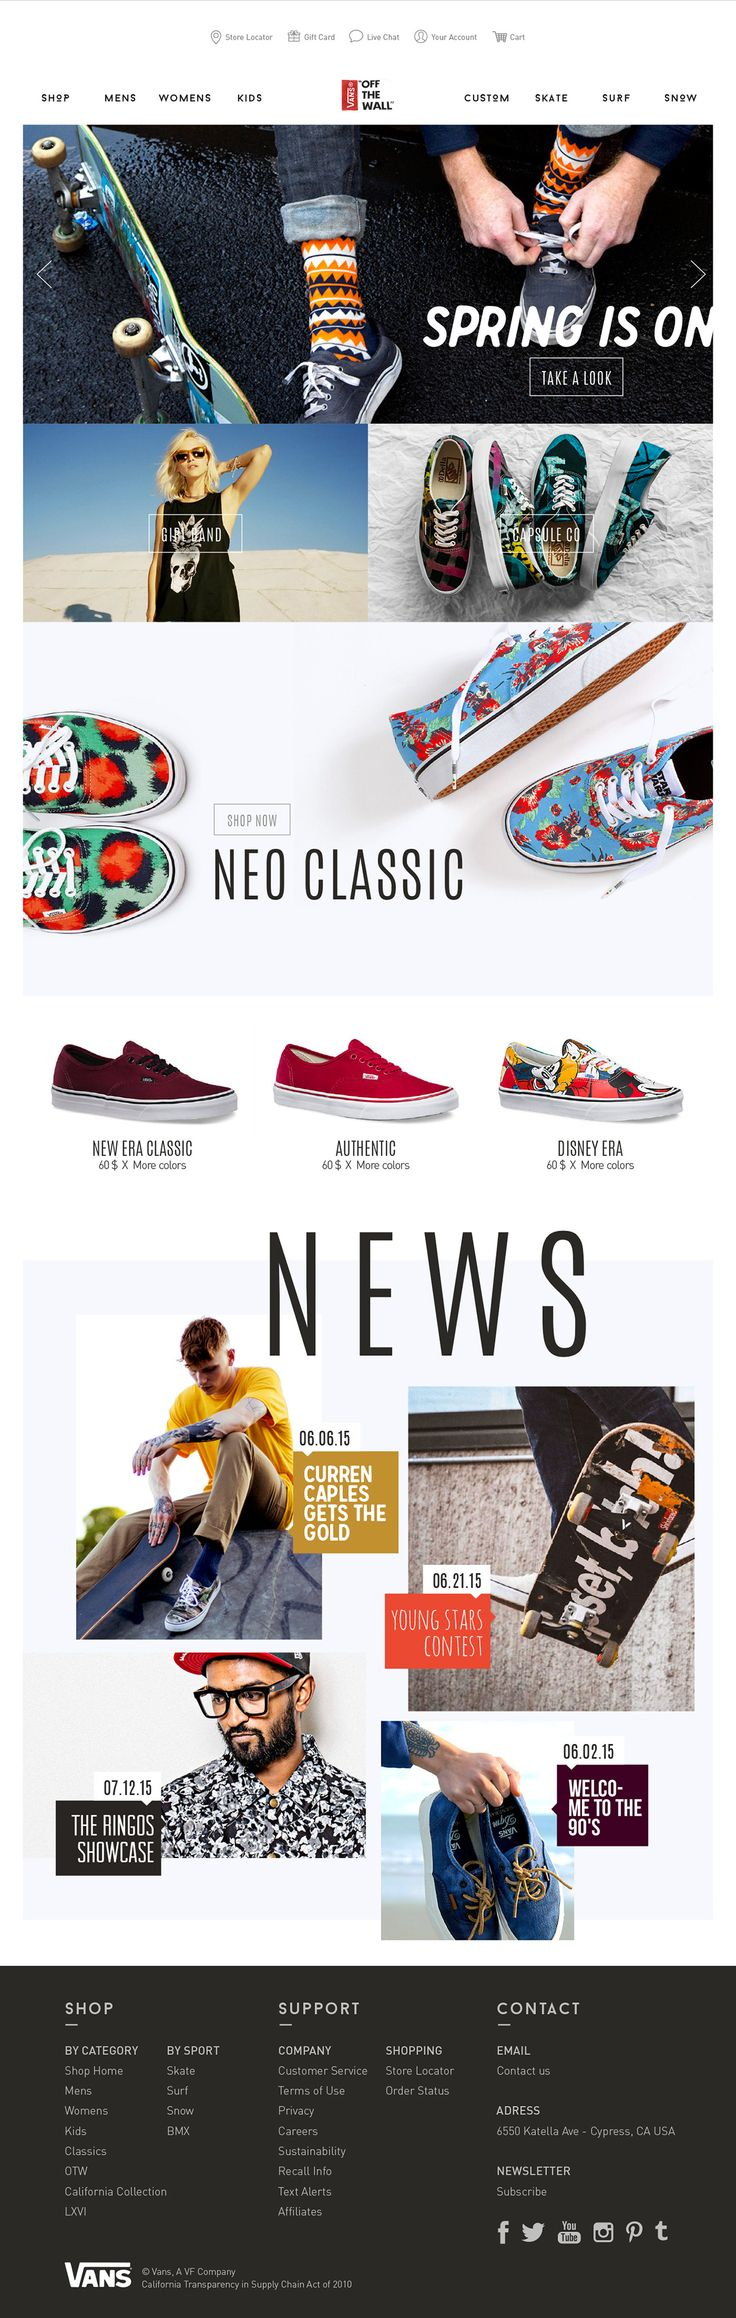 Vans spread a cool/trendy/hype image, but the website design doesn't match the brand image. I wear Vans everyday, and I feel it deserves a more design website. Here is a redesign concept.